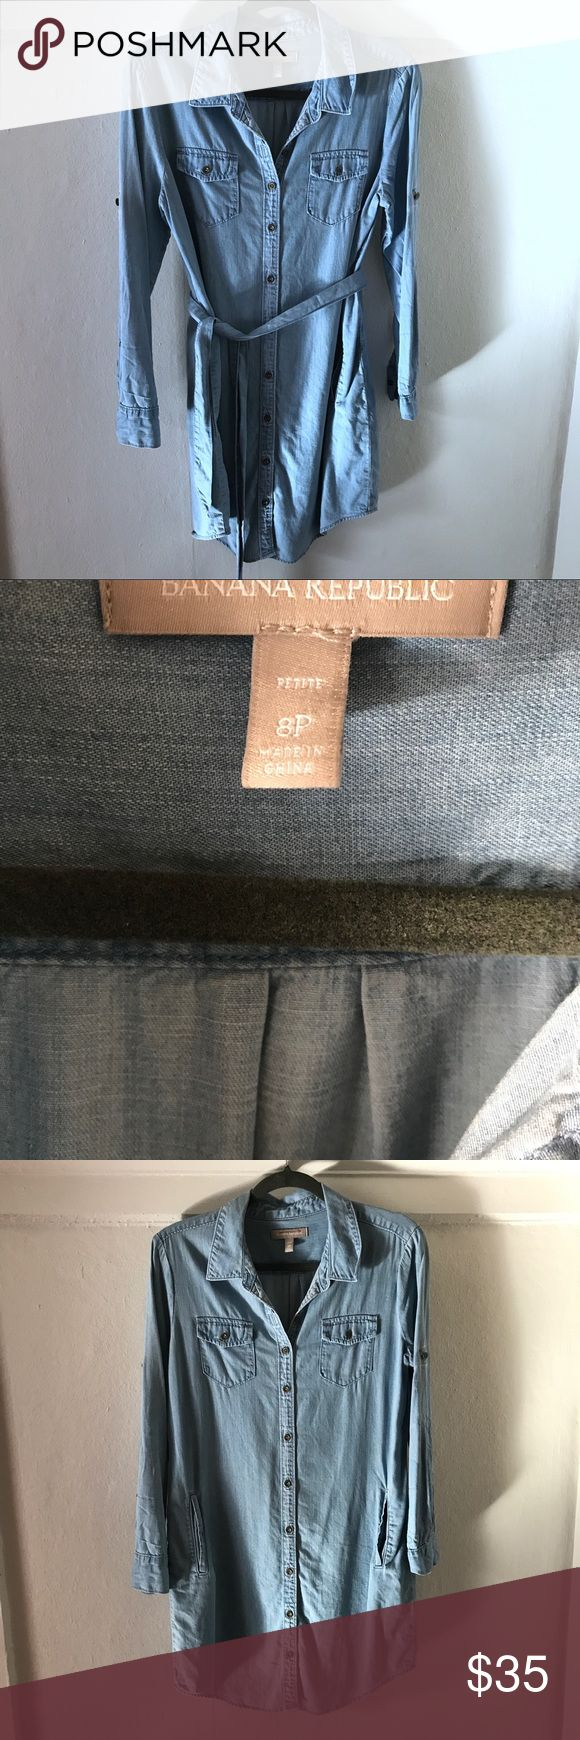 BANANA REPUBLIC Denim Dress BANANA REPUBLIC Classic Button Up Denim Dress - Size 8 Petite - Long sleeved but can be rolled up for wear year round - can also be worn with or without the tie waist belt. - Dress has pockets which is the best. Banana Republic Dresses